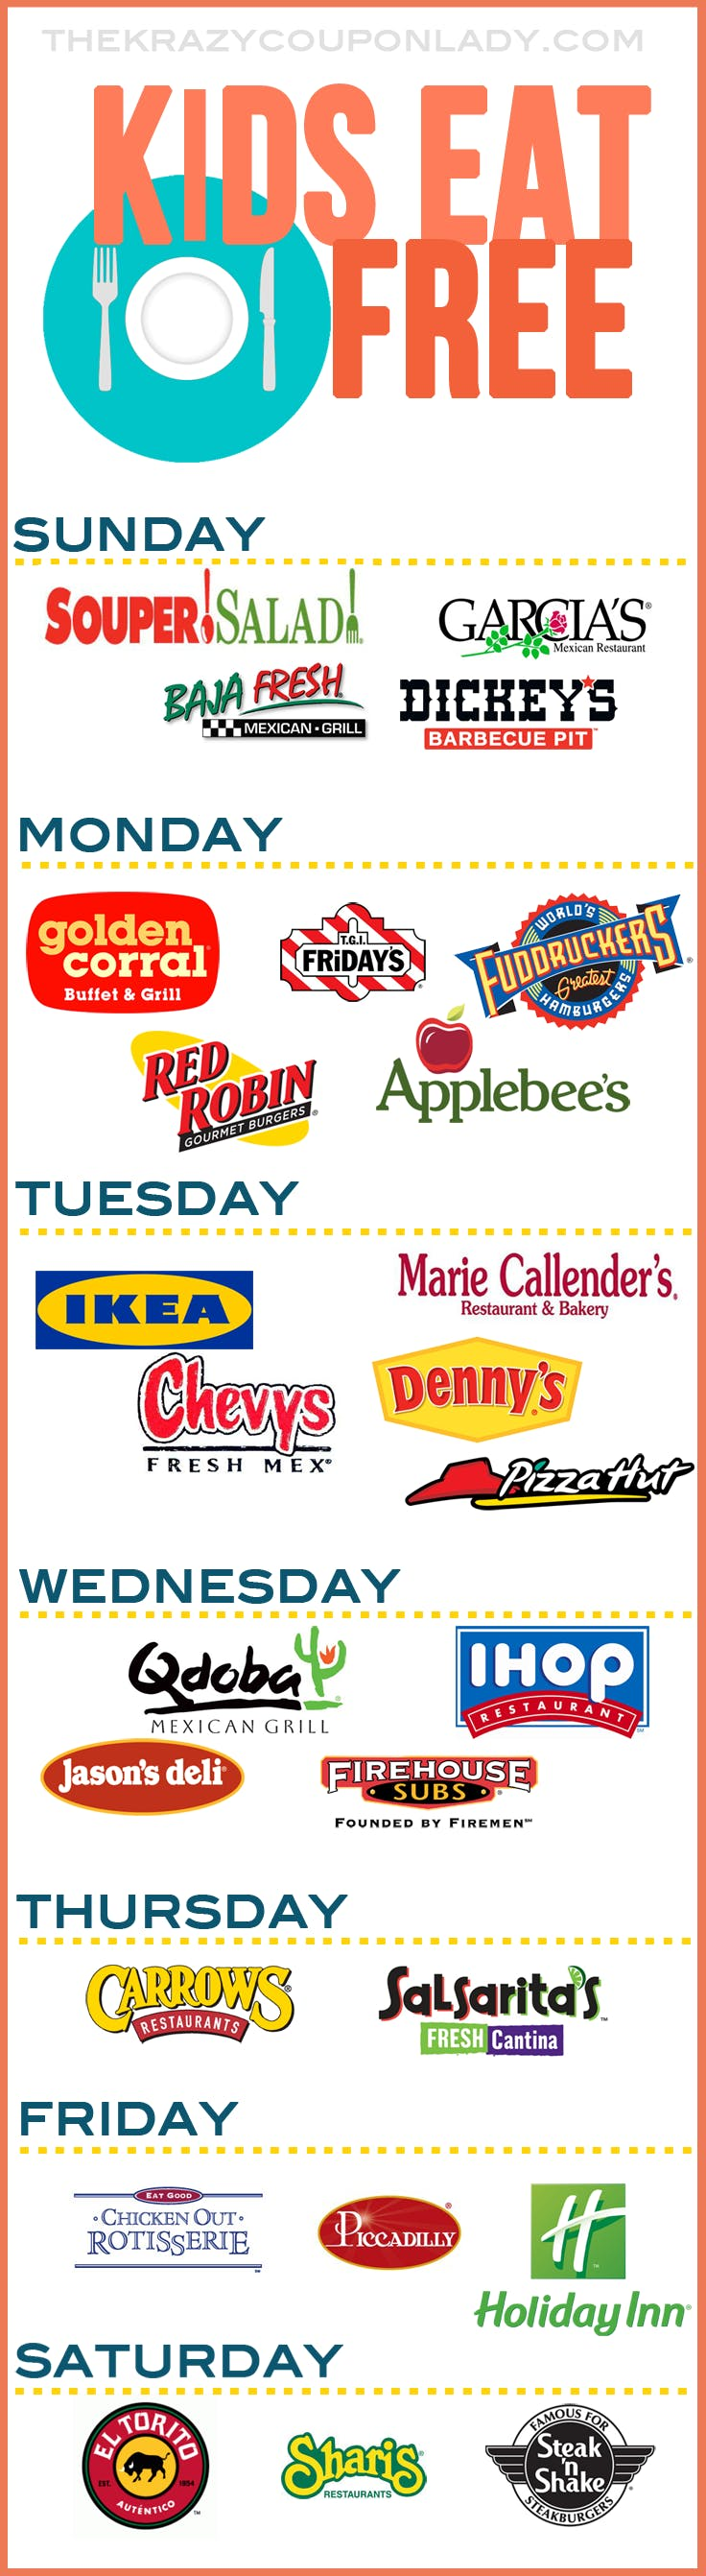 A Comprehensive Guide To Kids Eat Free Restaurants The Krazy Coupon Lady